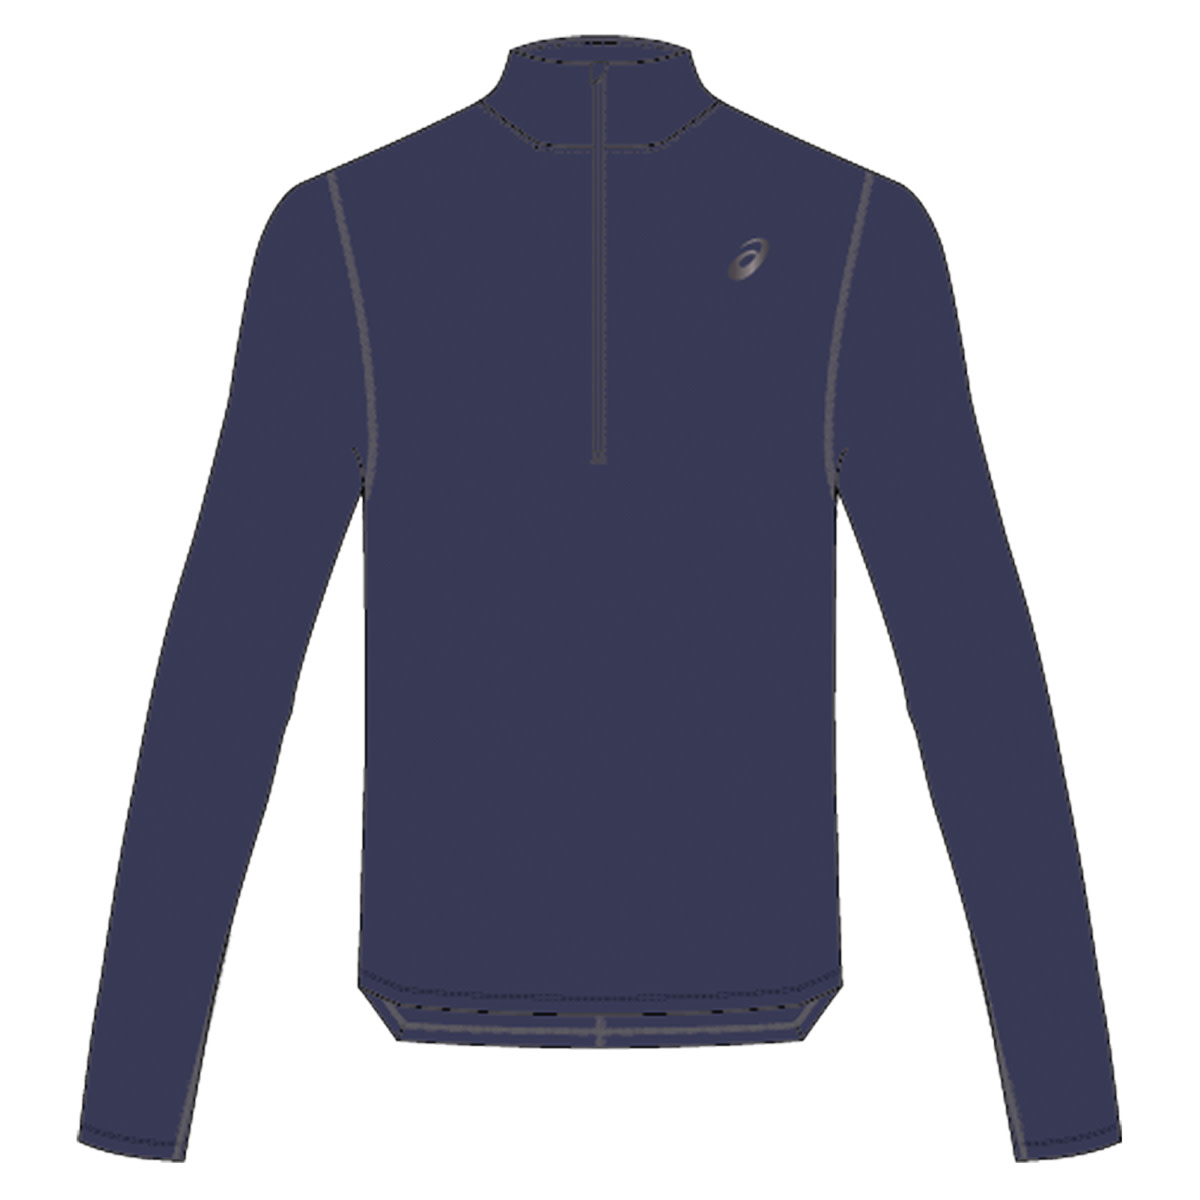 c9bb813e481 ASICS SILVER Long Sleeve 1/2 ZIP TOP - Running tops for Men - Blue | 21RUN